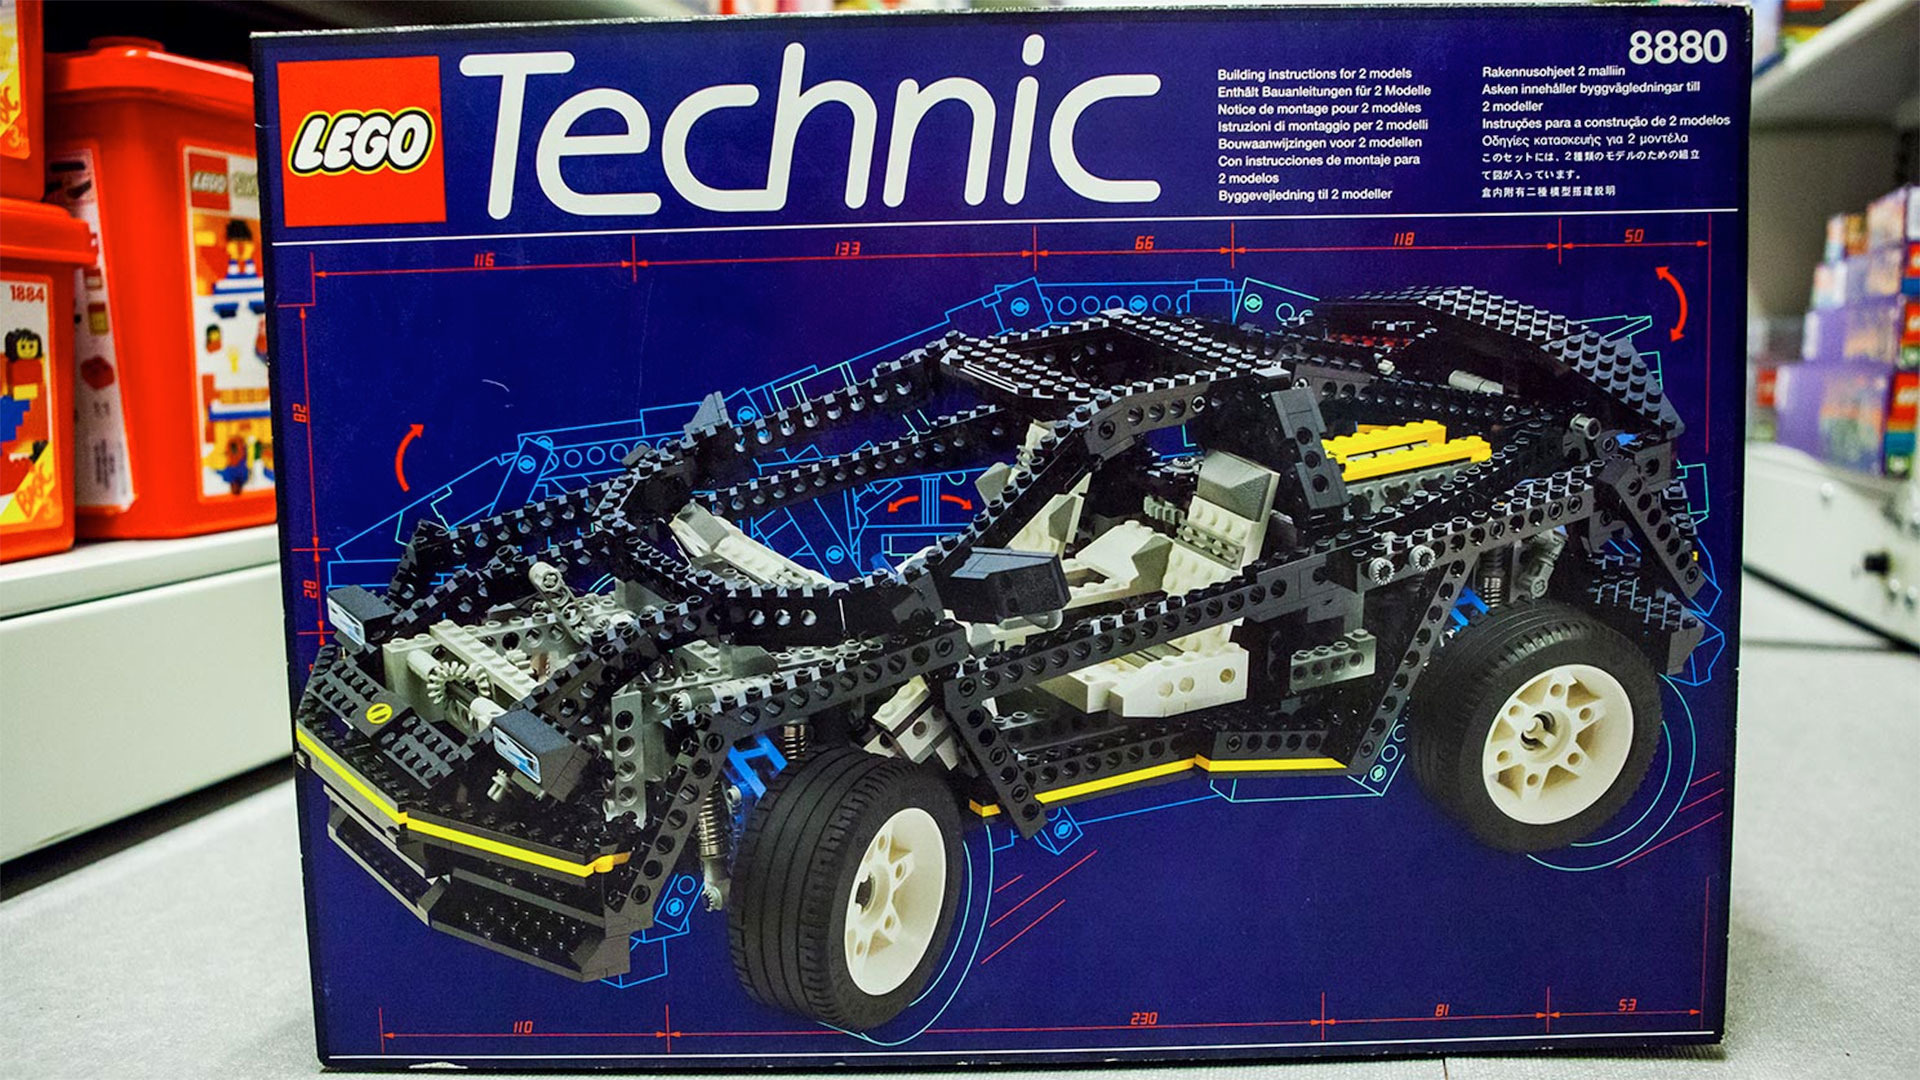 Lego Technic 2018 Sets >> The Lego Technic Car I Always Wanted Now Costs A Thousand Bucks